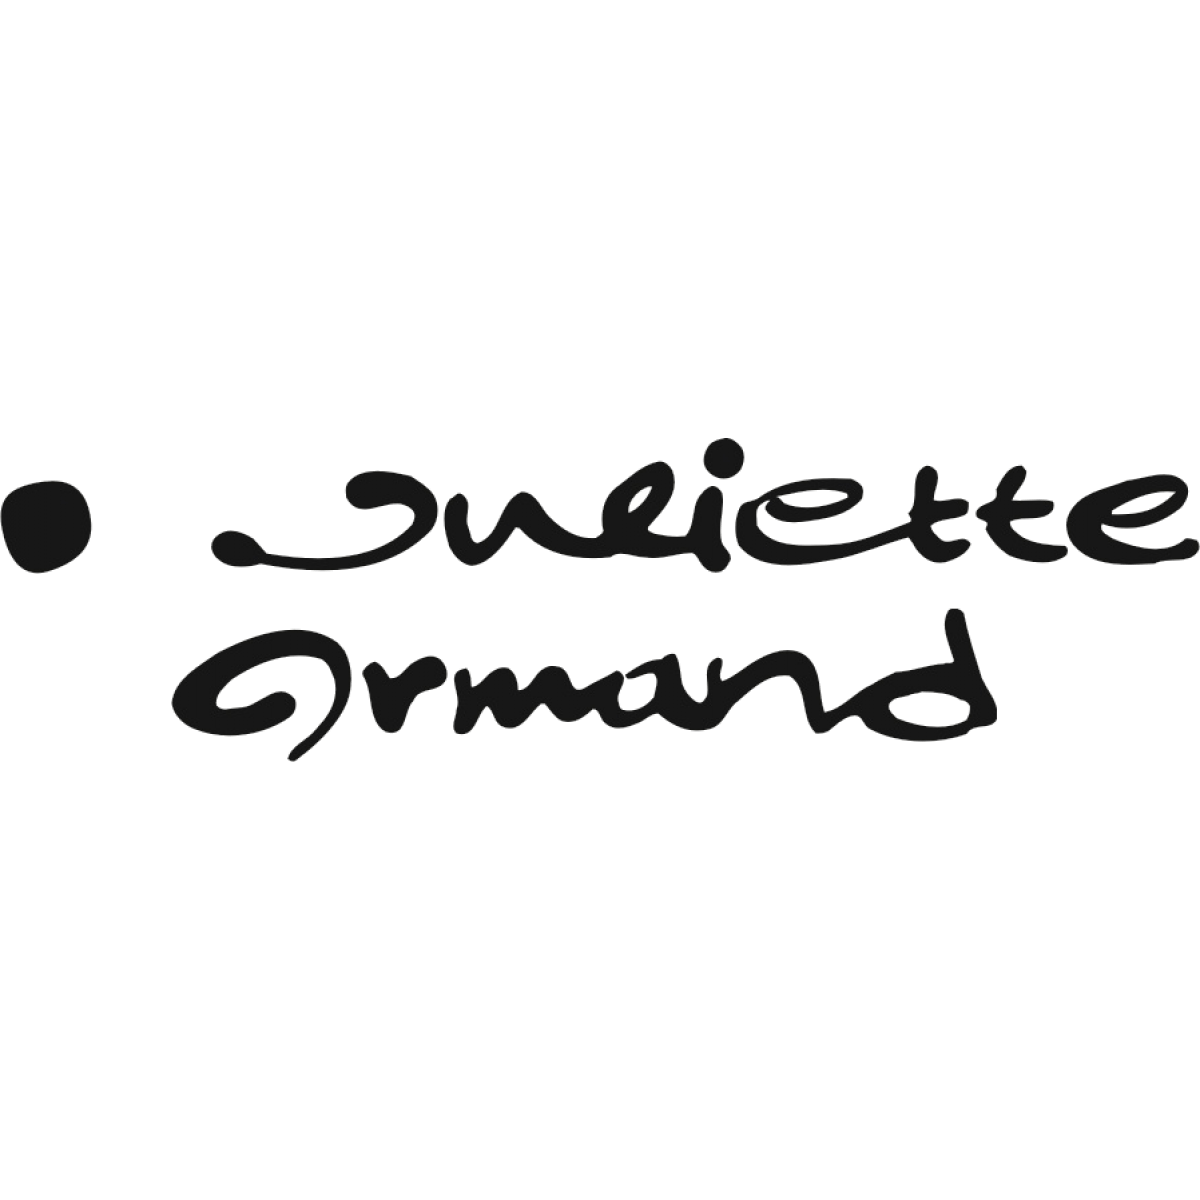 juliette-armand